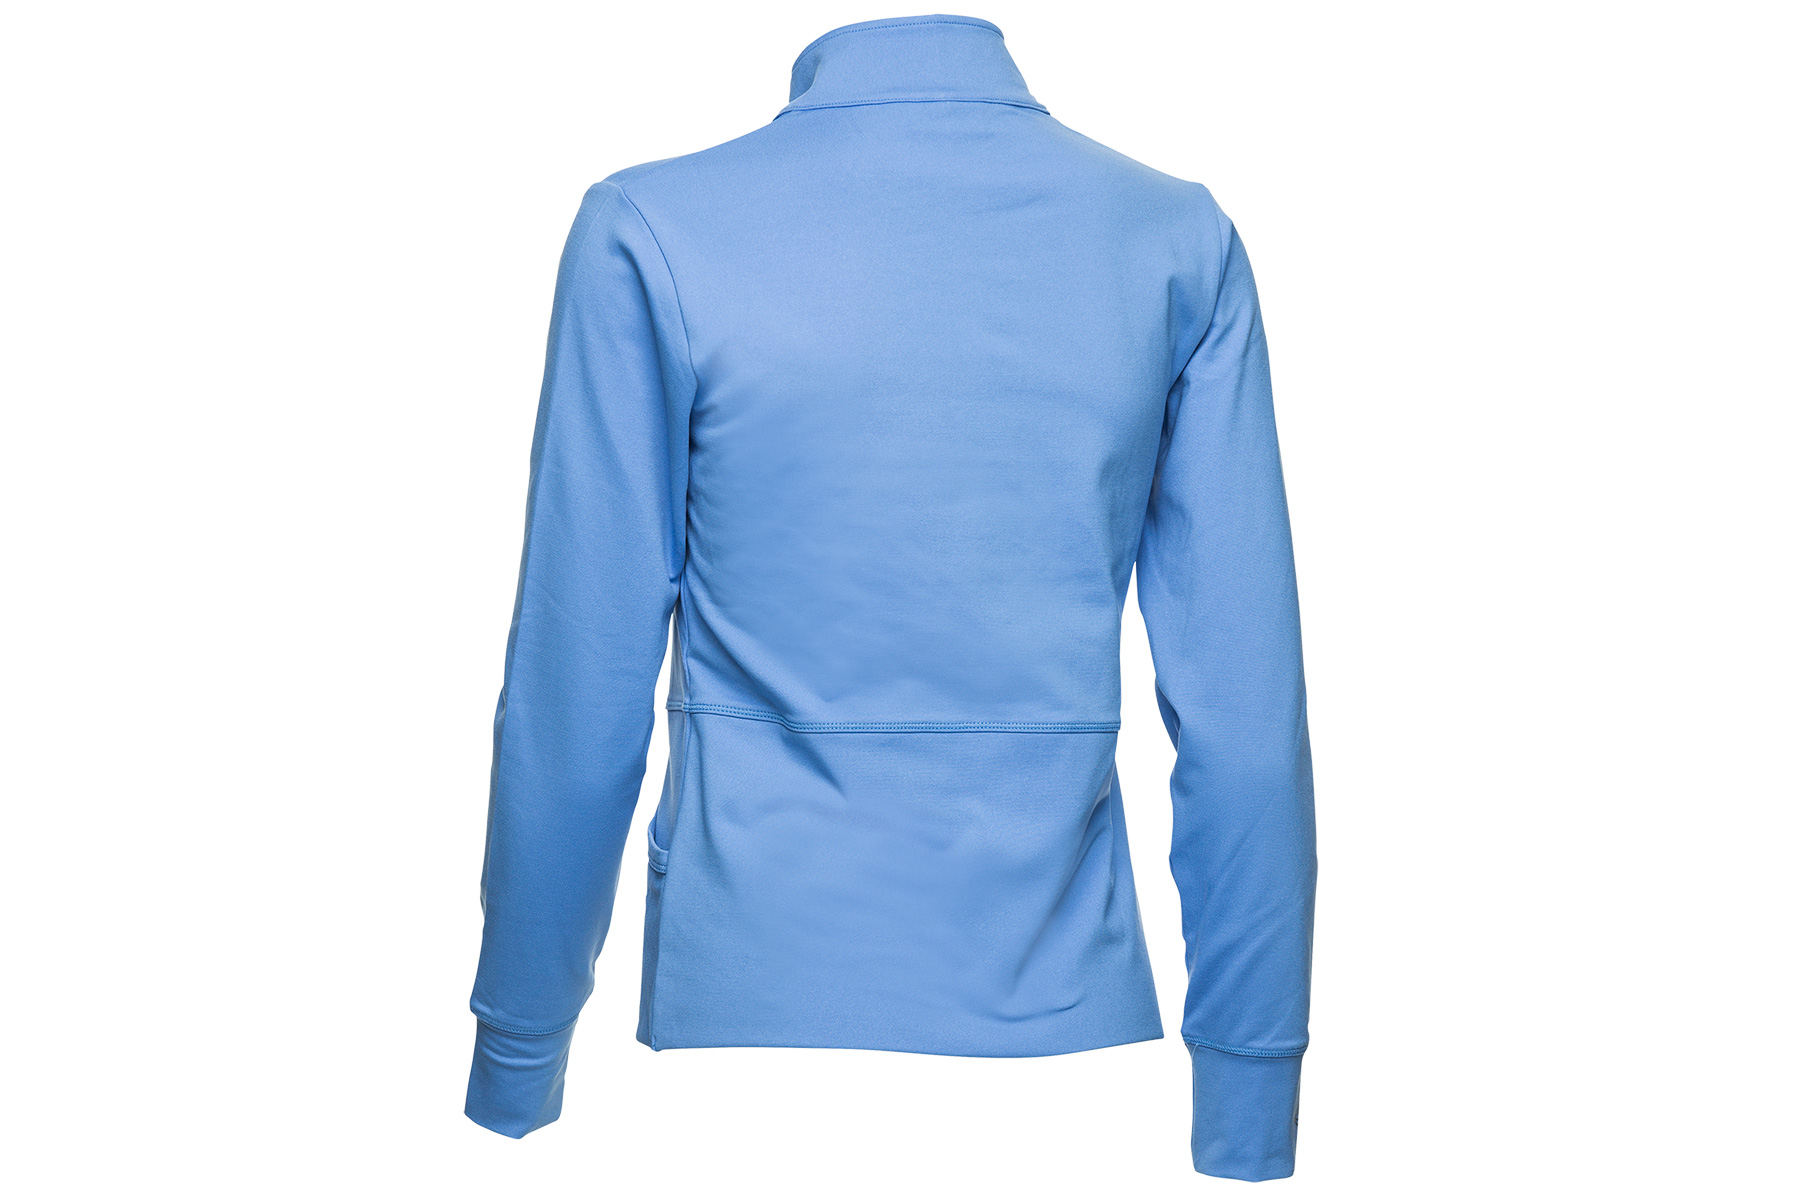 daily sports quincy ladies jacket from american golf